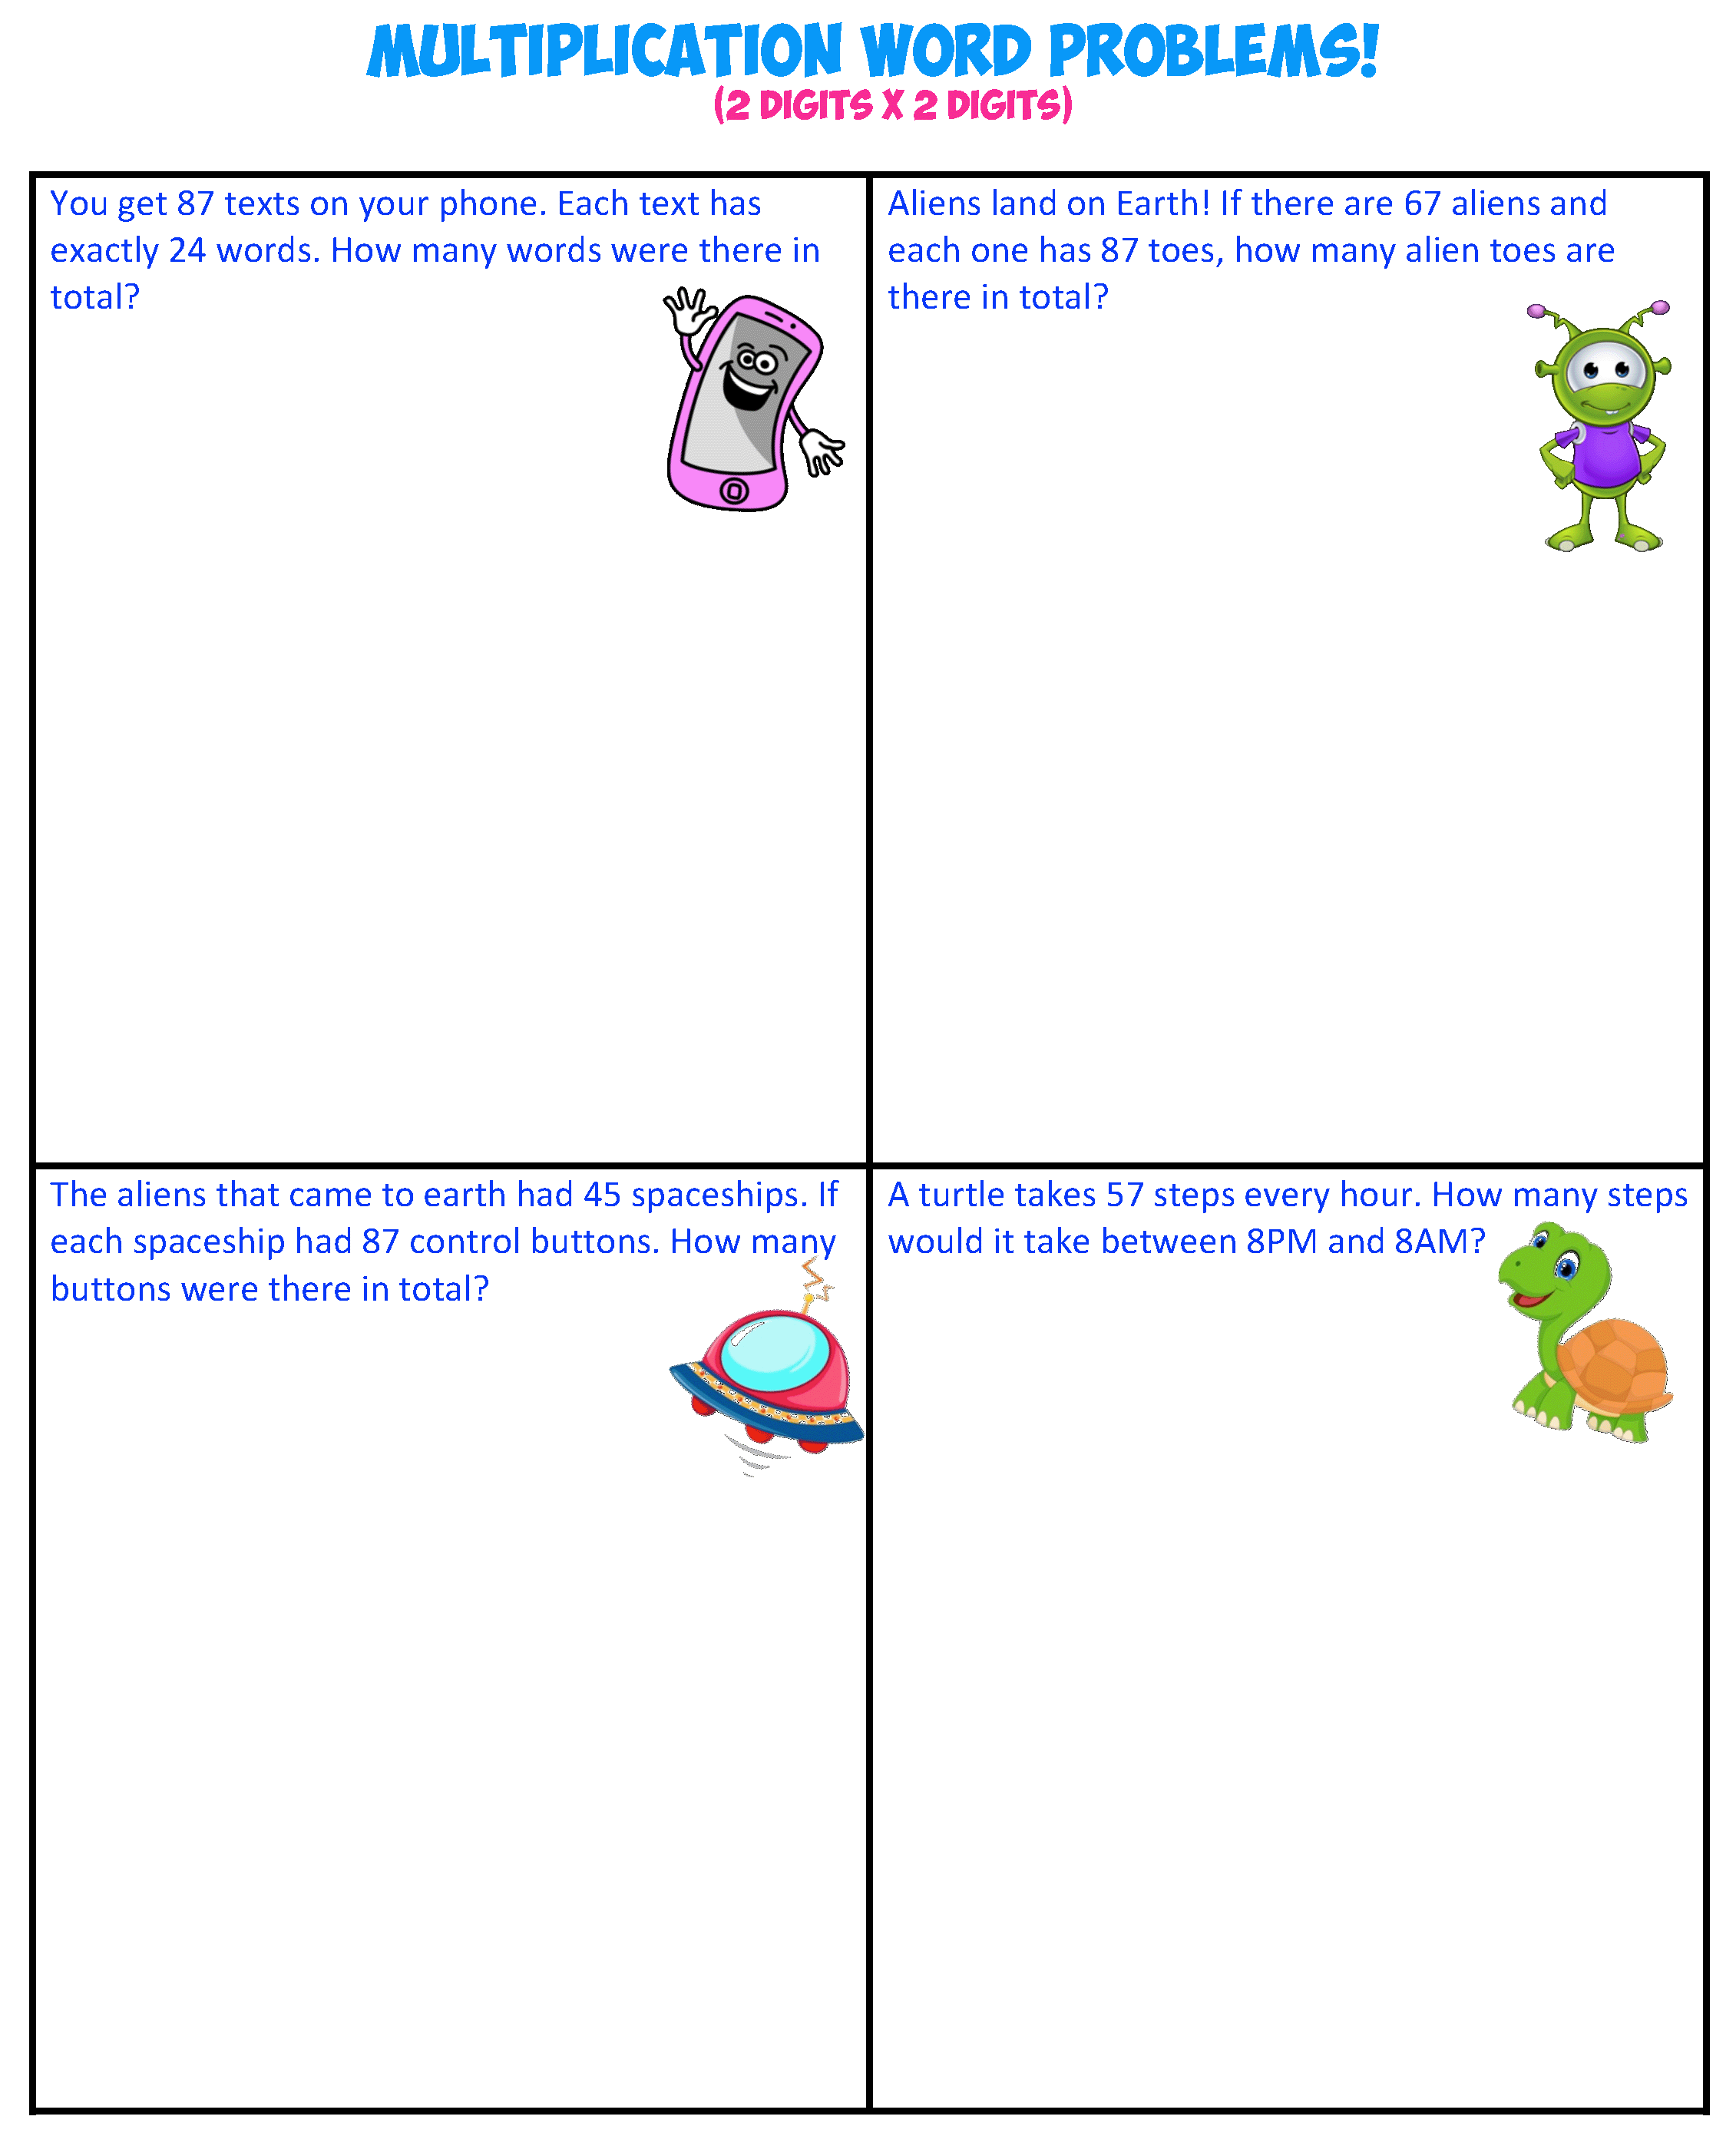 Multiplication Word Problems Free In 2021 Multiplication Word Problems Word Problems Free Word Problems [ 2795 x 2261 Pixel ]